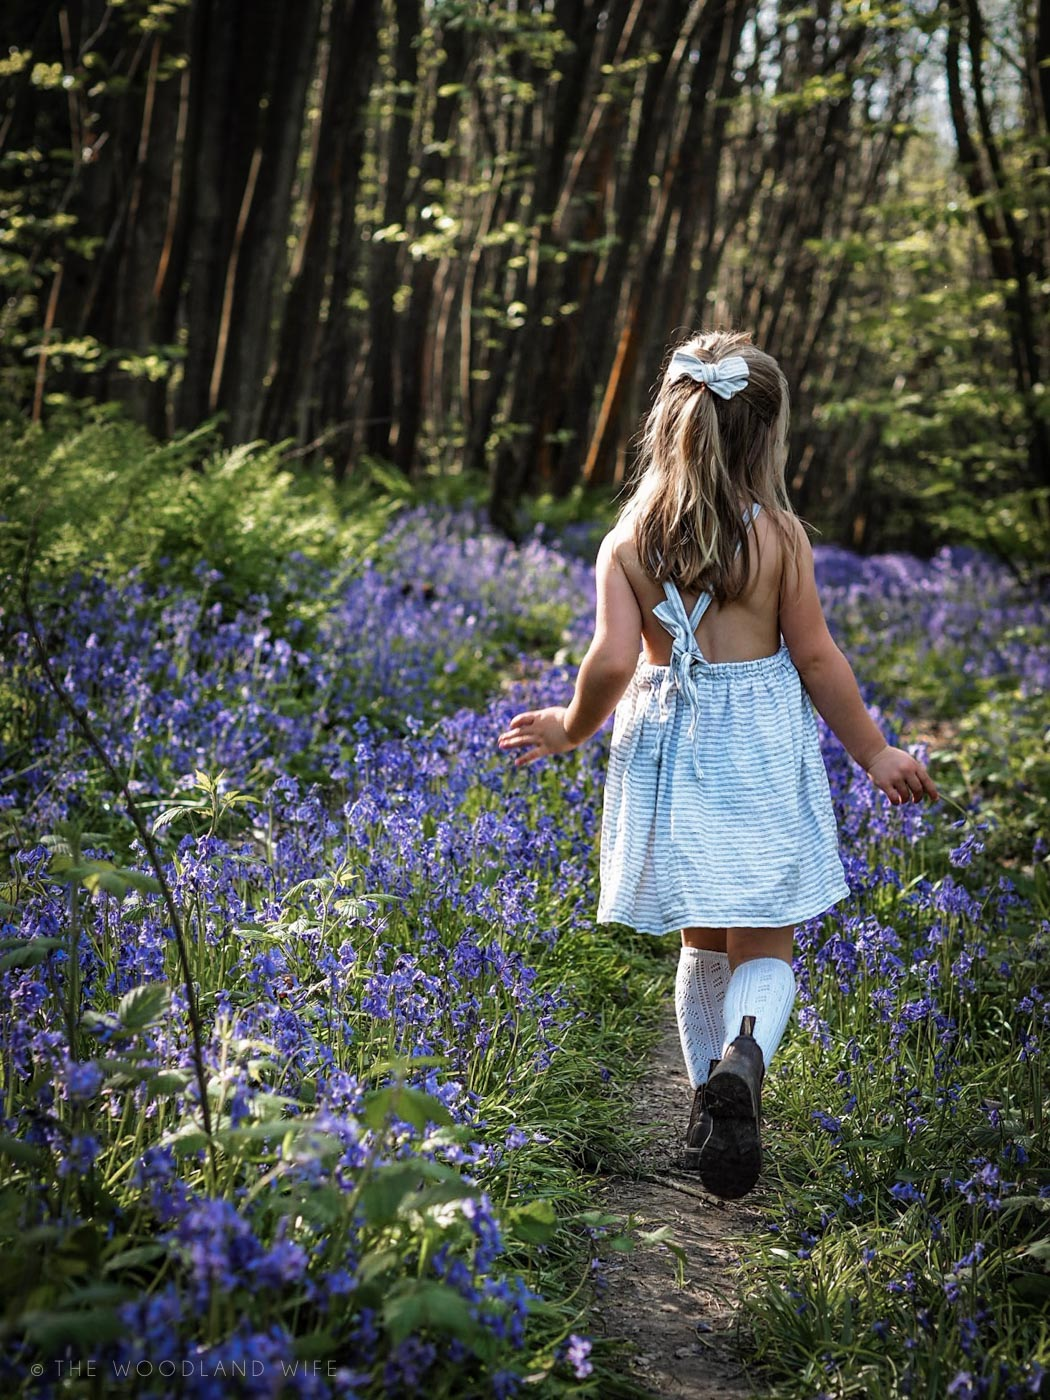 The Woodland Wife - Kent Bluebell Woods - Nellie Quats Linen Pinafore - Bluebells - Blue Haze